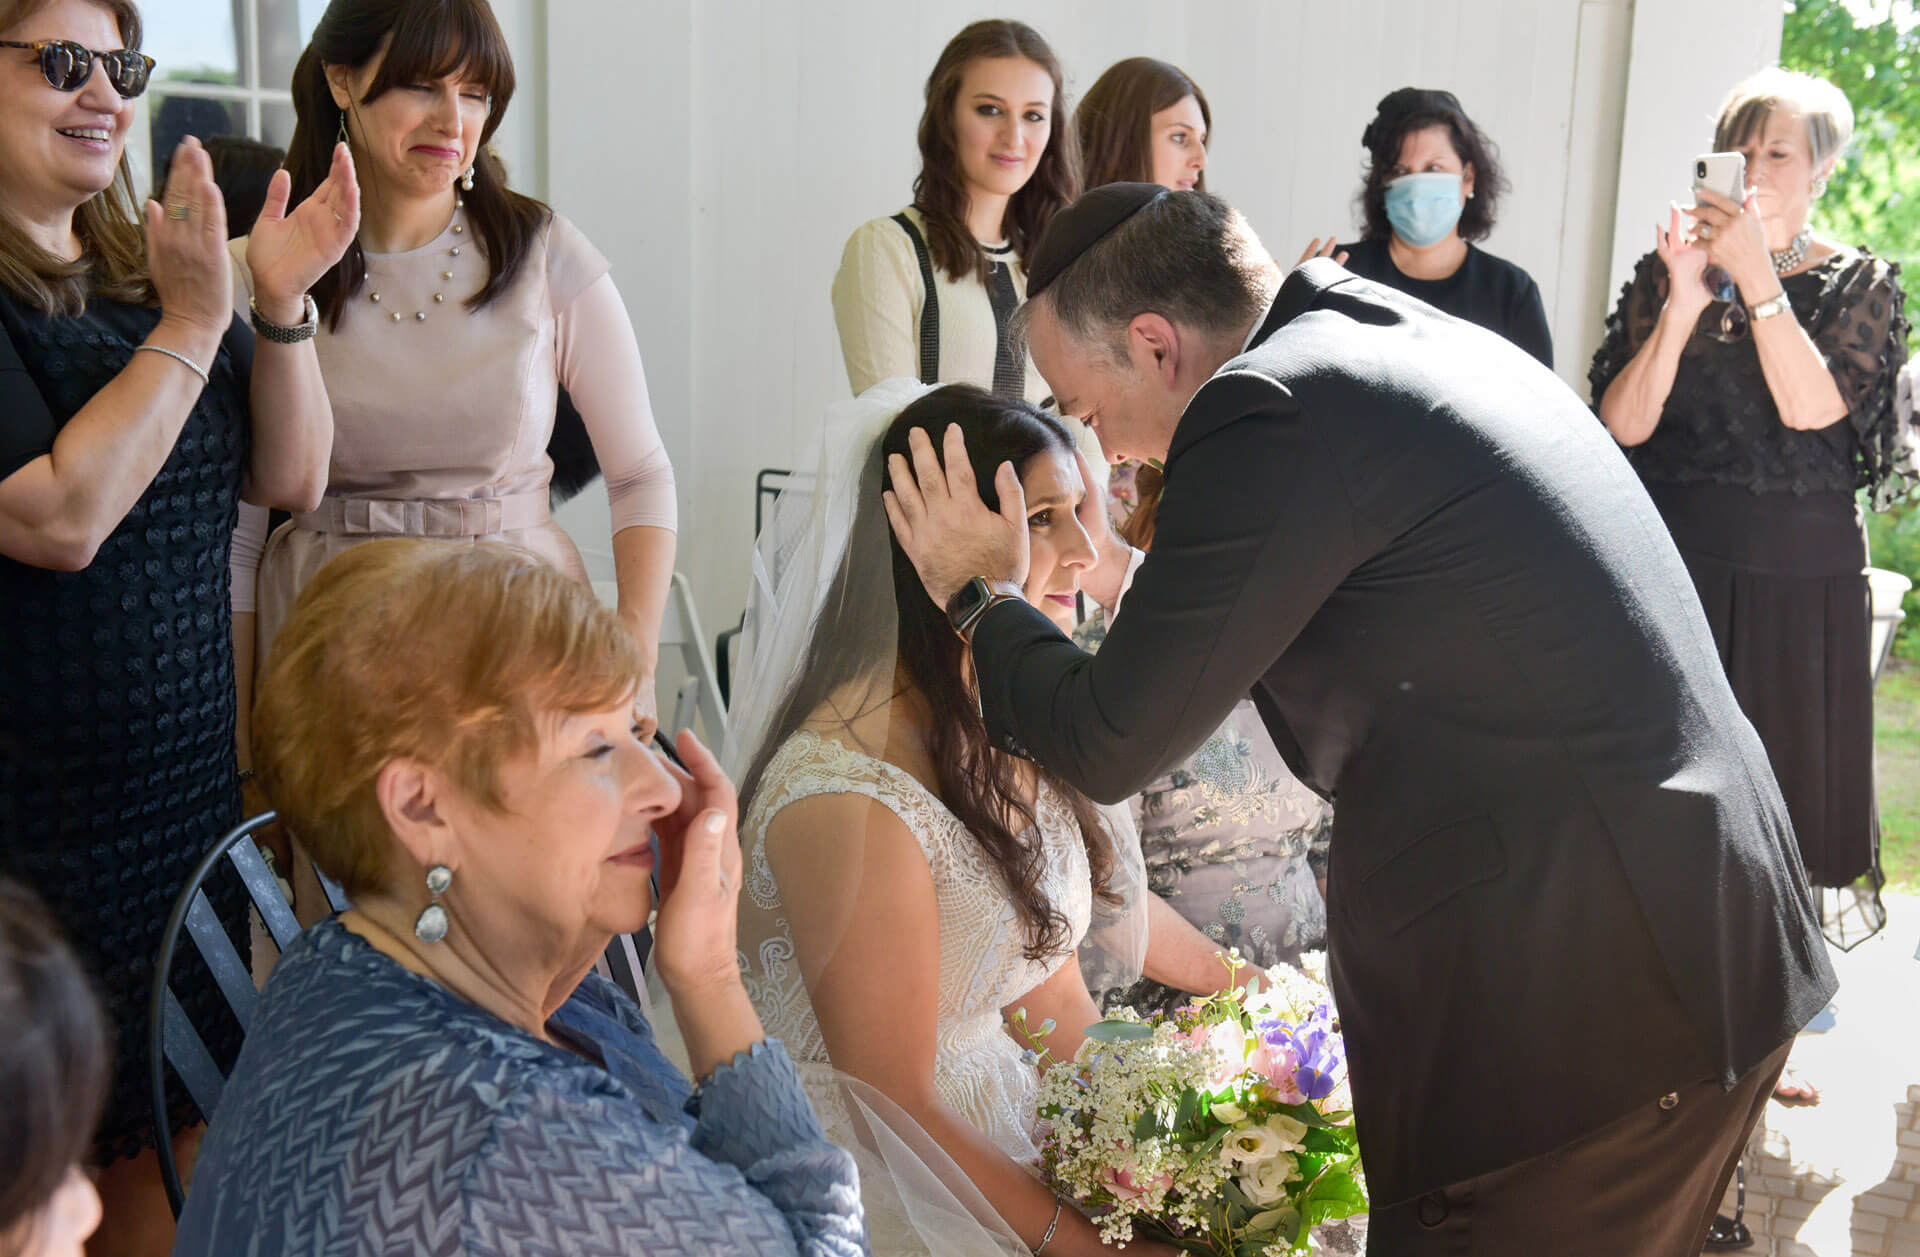 The bride receives a blessing from her brother during her orthodox Jewish wedding held during the pandemic at Waldenwoods Resort in Howell, Michigan.